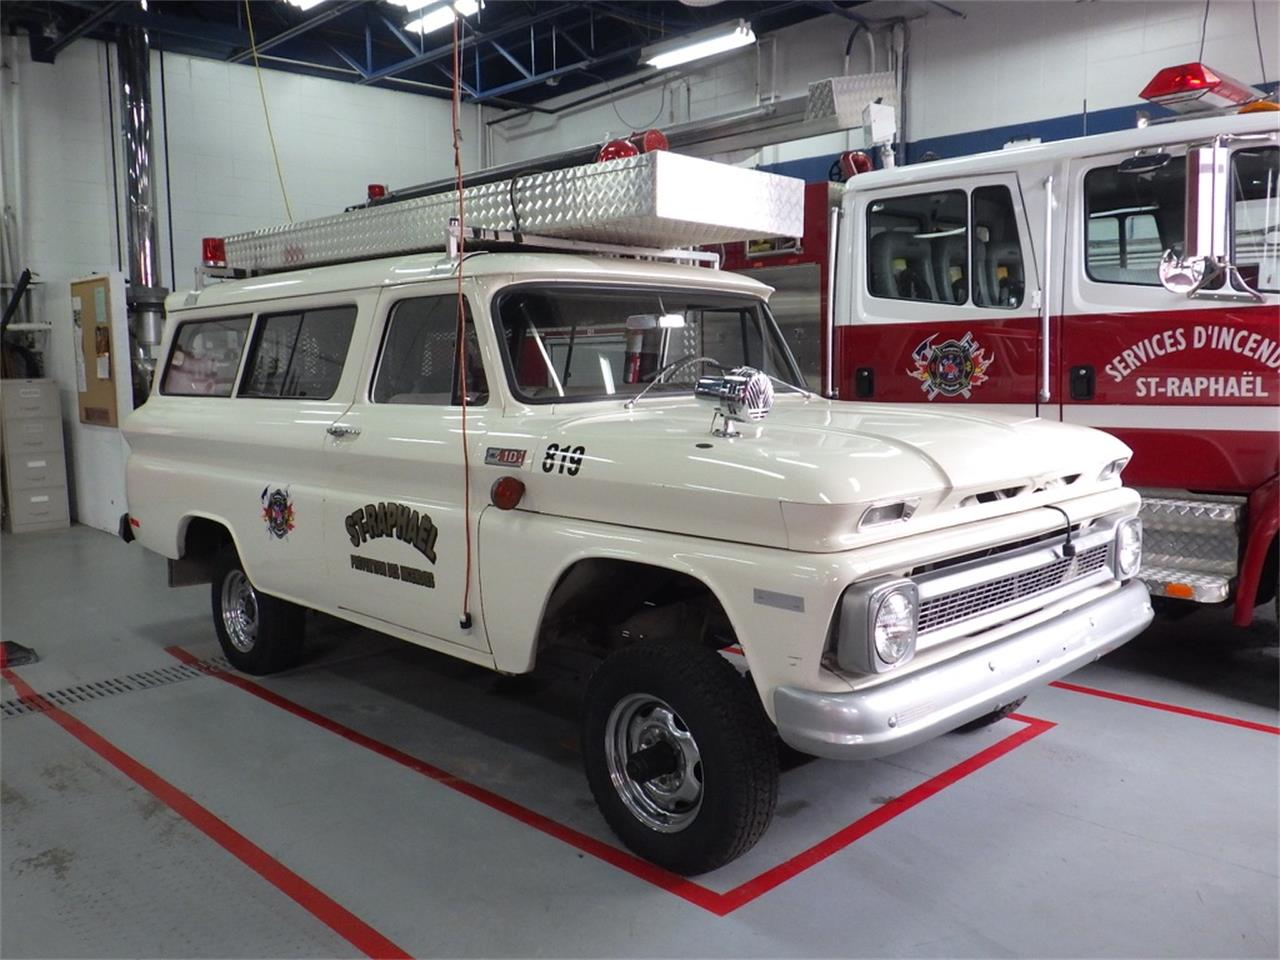 Large Picture of '65 Chevrolet Suburban located in Saint-Raphaël Quebec - $25,000.00 Offered by a Private Seller - P8KZ